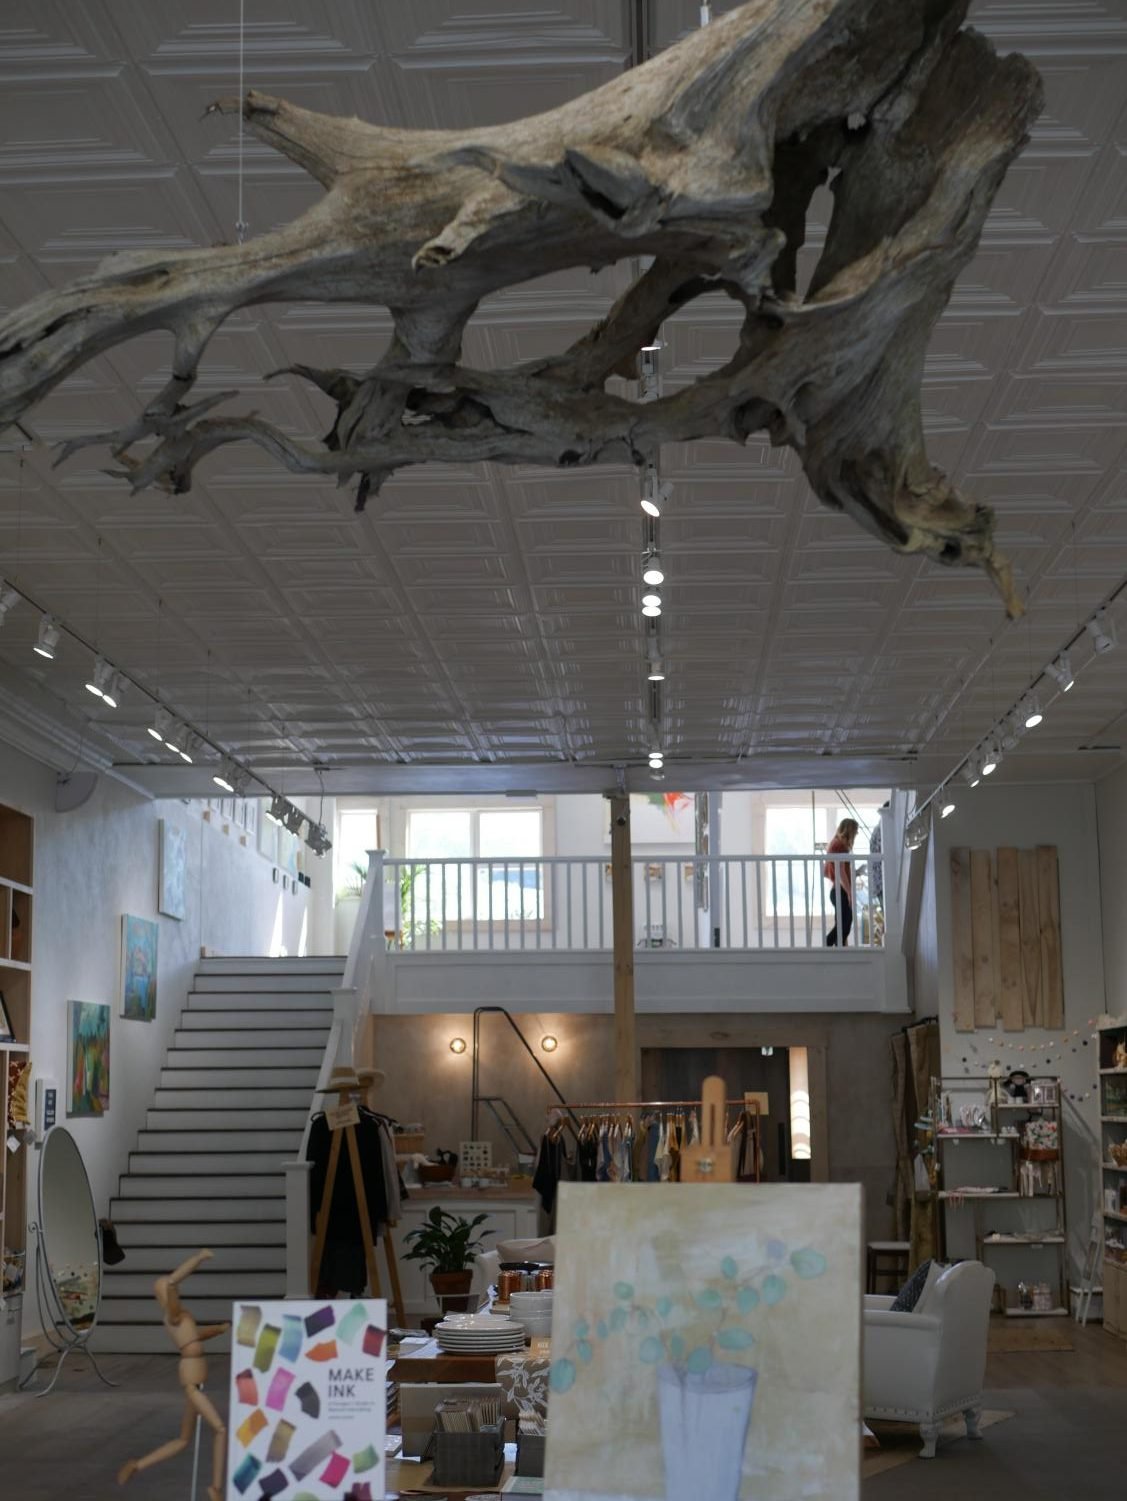 Opening up just this summer, Common Good Co. uses its three story building as space for interacting, sharing, and creating art for the community of Boone.